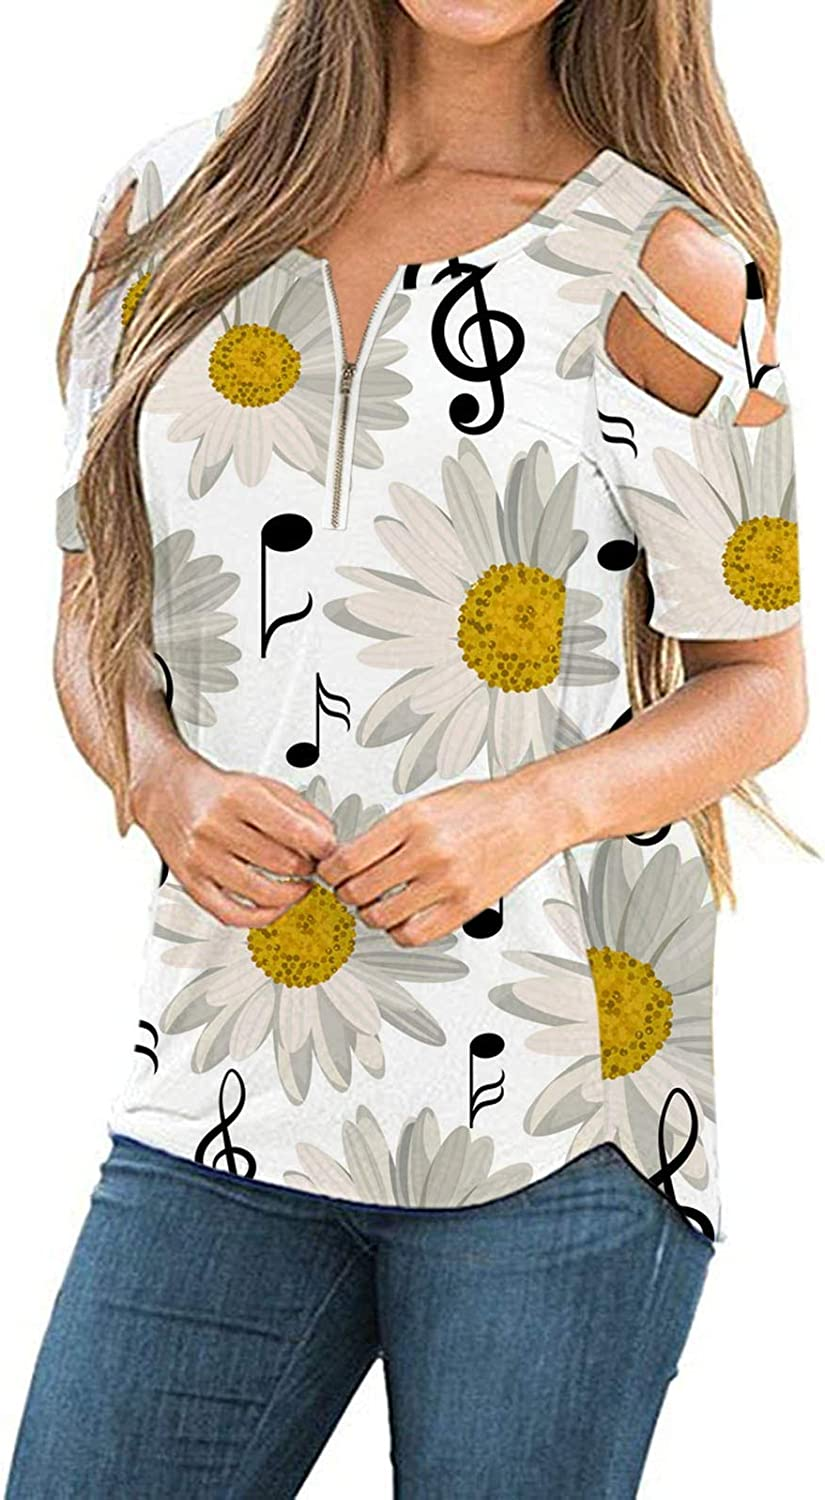 BEUU Womens Strappy Cold Shoulder Tops Floral Print Casual Tees Loose Basic Round Neck Crisscross T Shirt Blouse